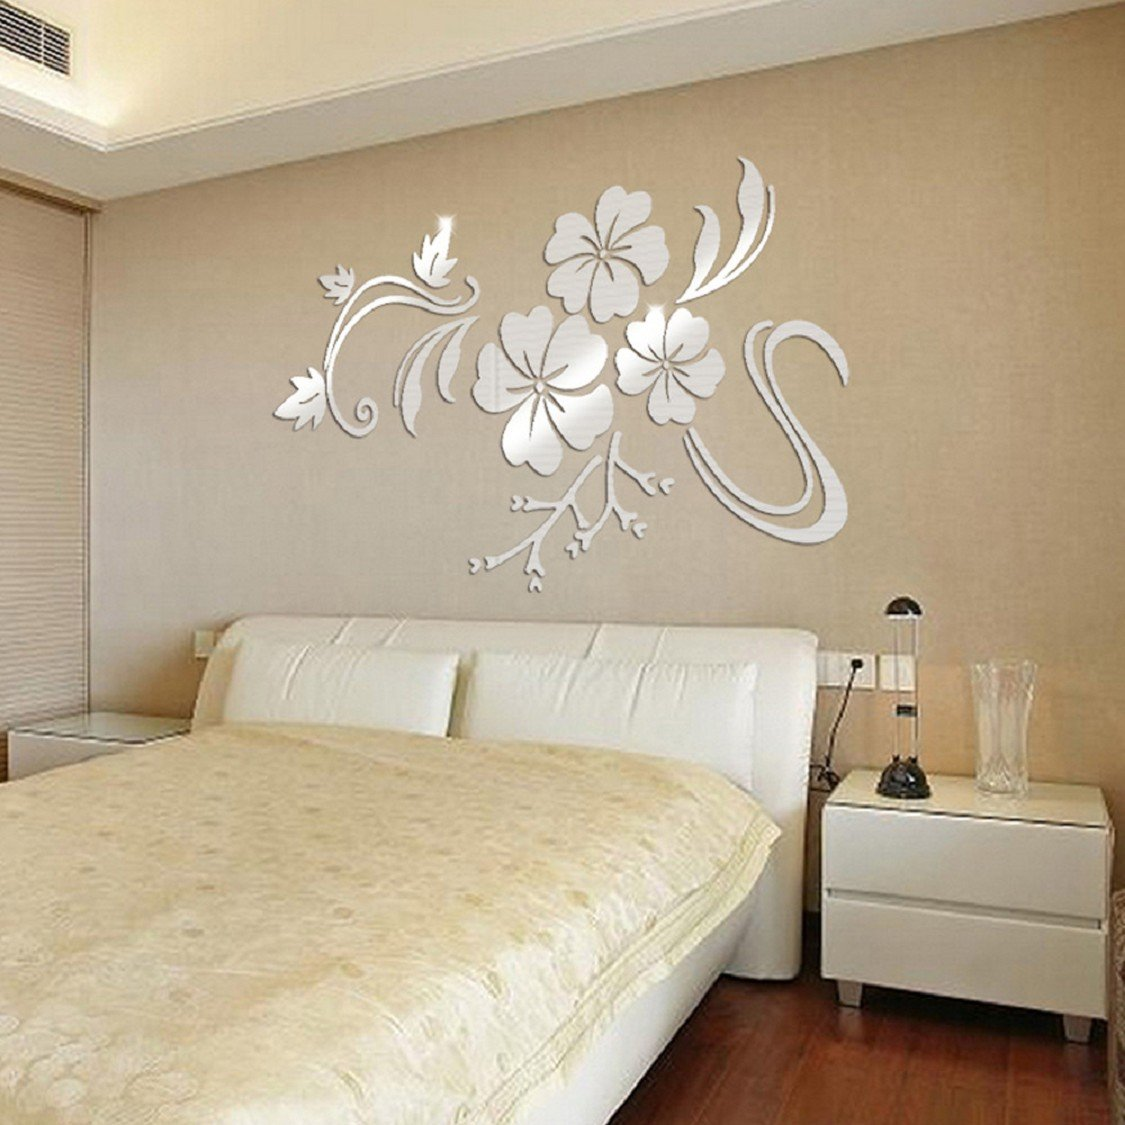 Ikevan 1set acrylic art 3d mirror flower wall stickers diy home ikevan 1set acrylic art 3d mirror flower wall stickers diy home wall room decals decor sofa tv setting wall removable wall stickers 78x60cm sliver amipublicfo Gallery